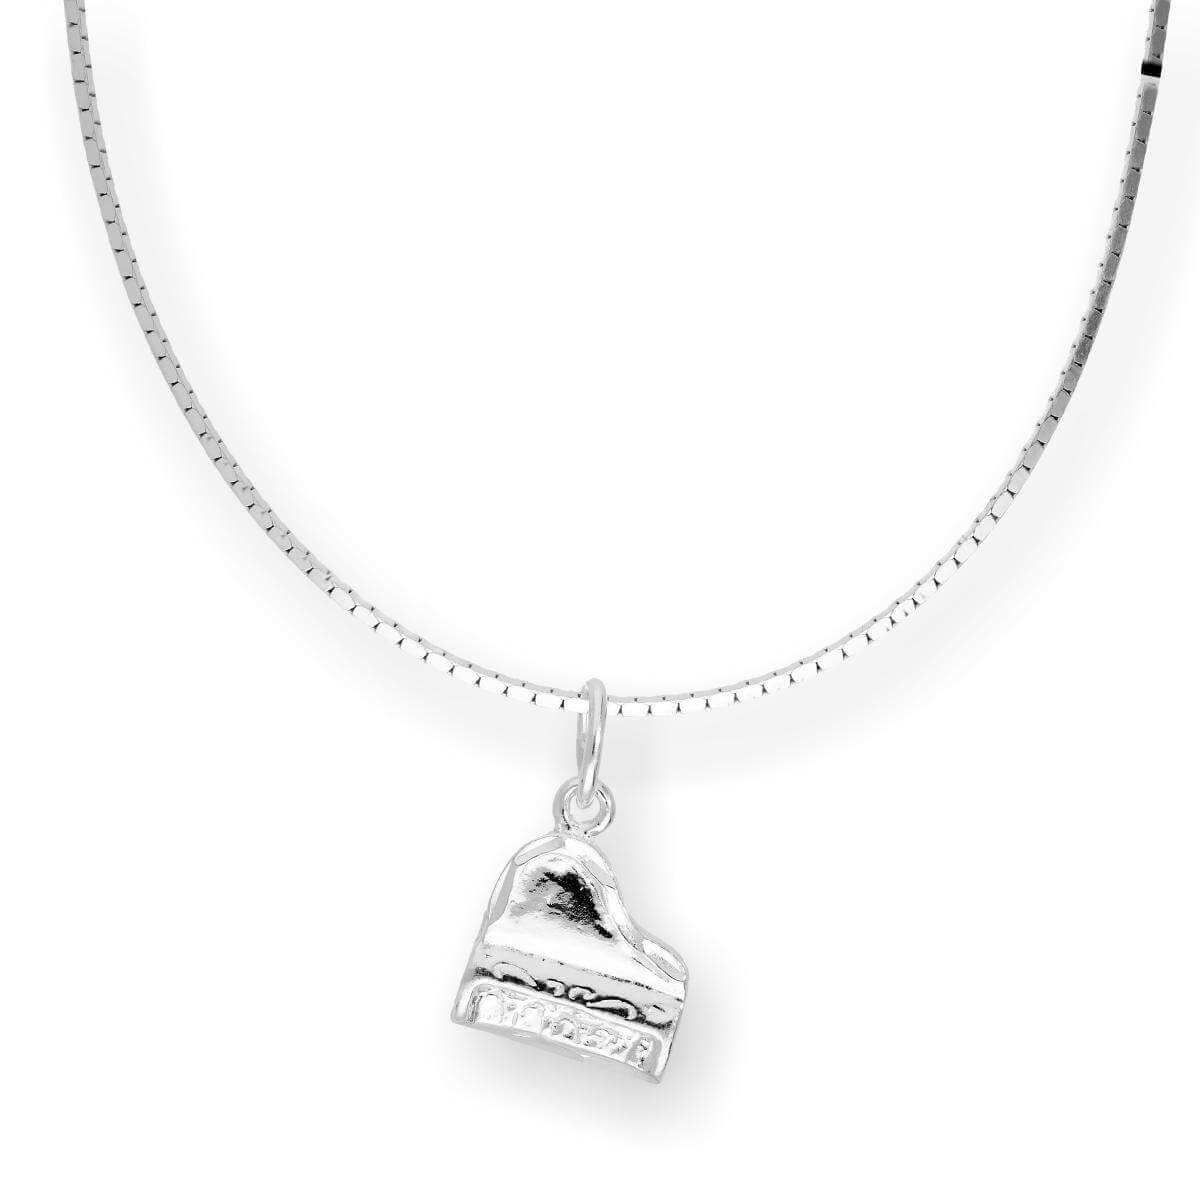 Sterling Silver Piano Pendant Necklace 16 - 22 Inches